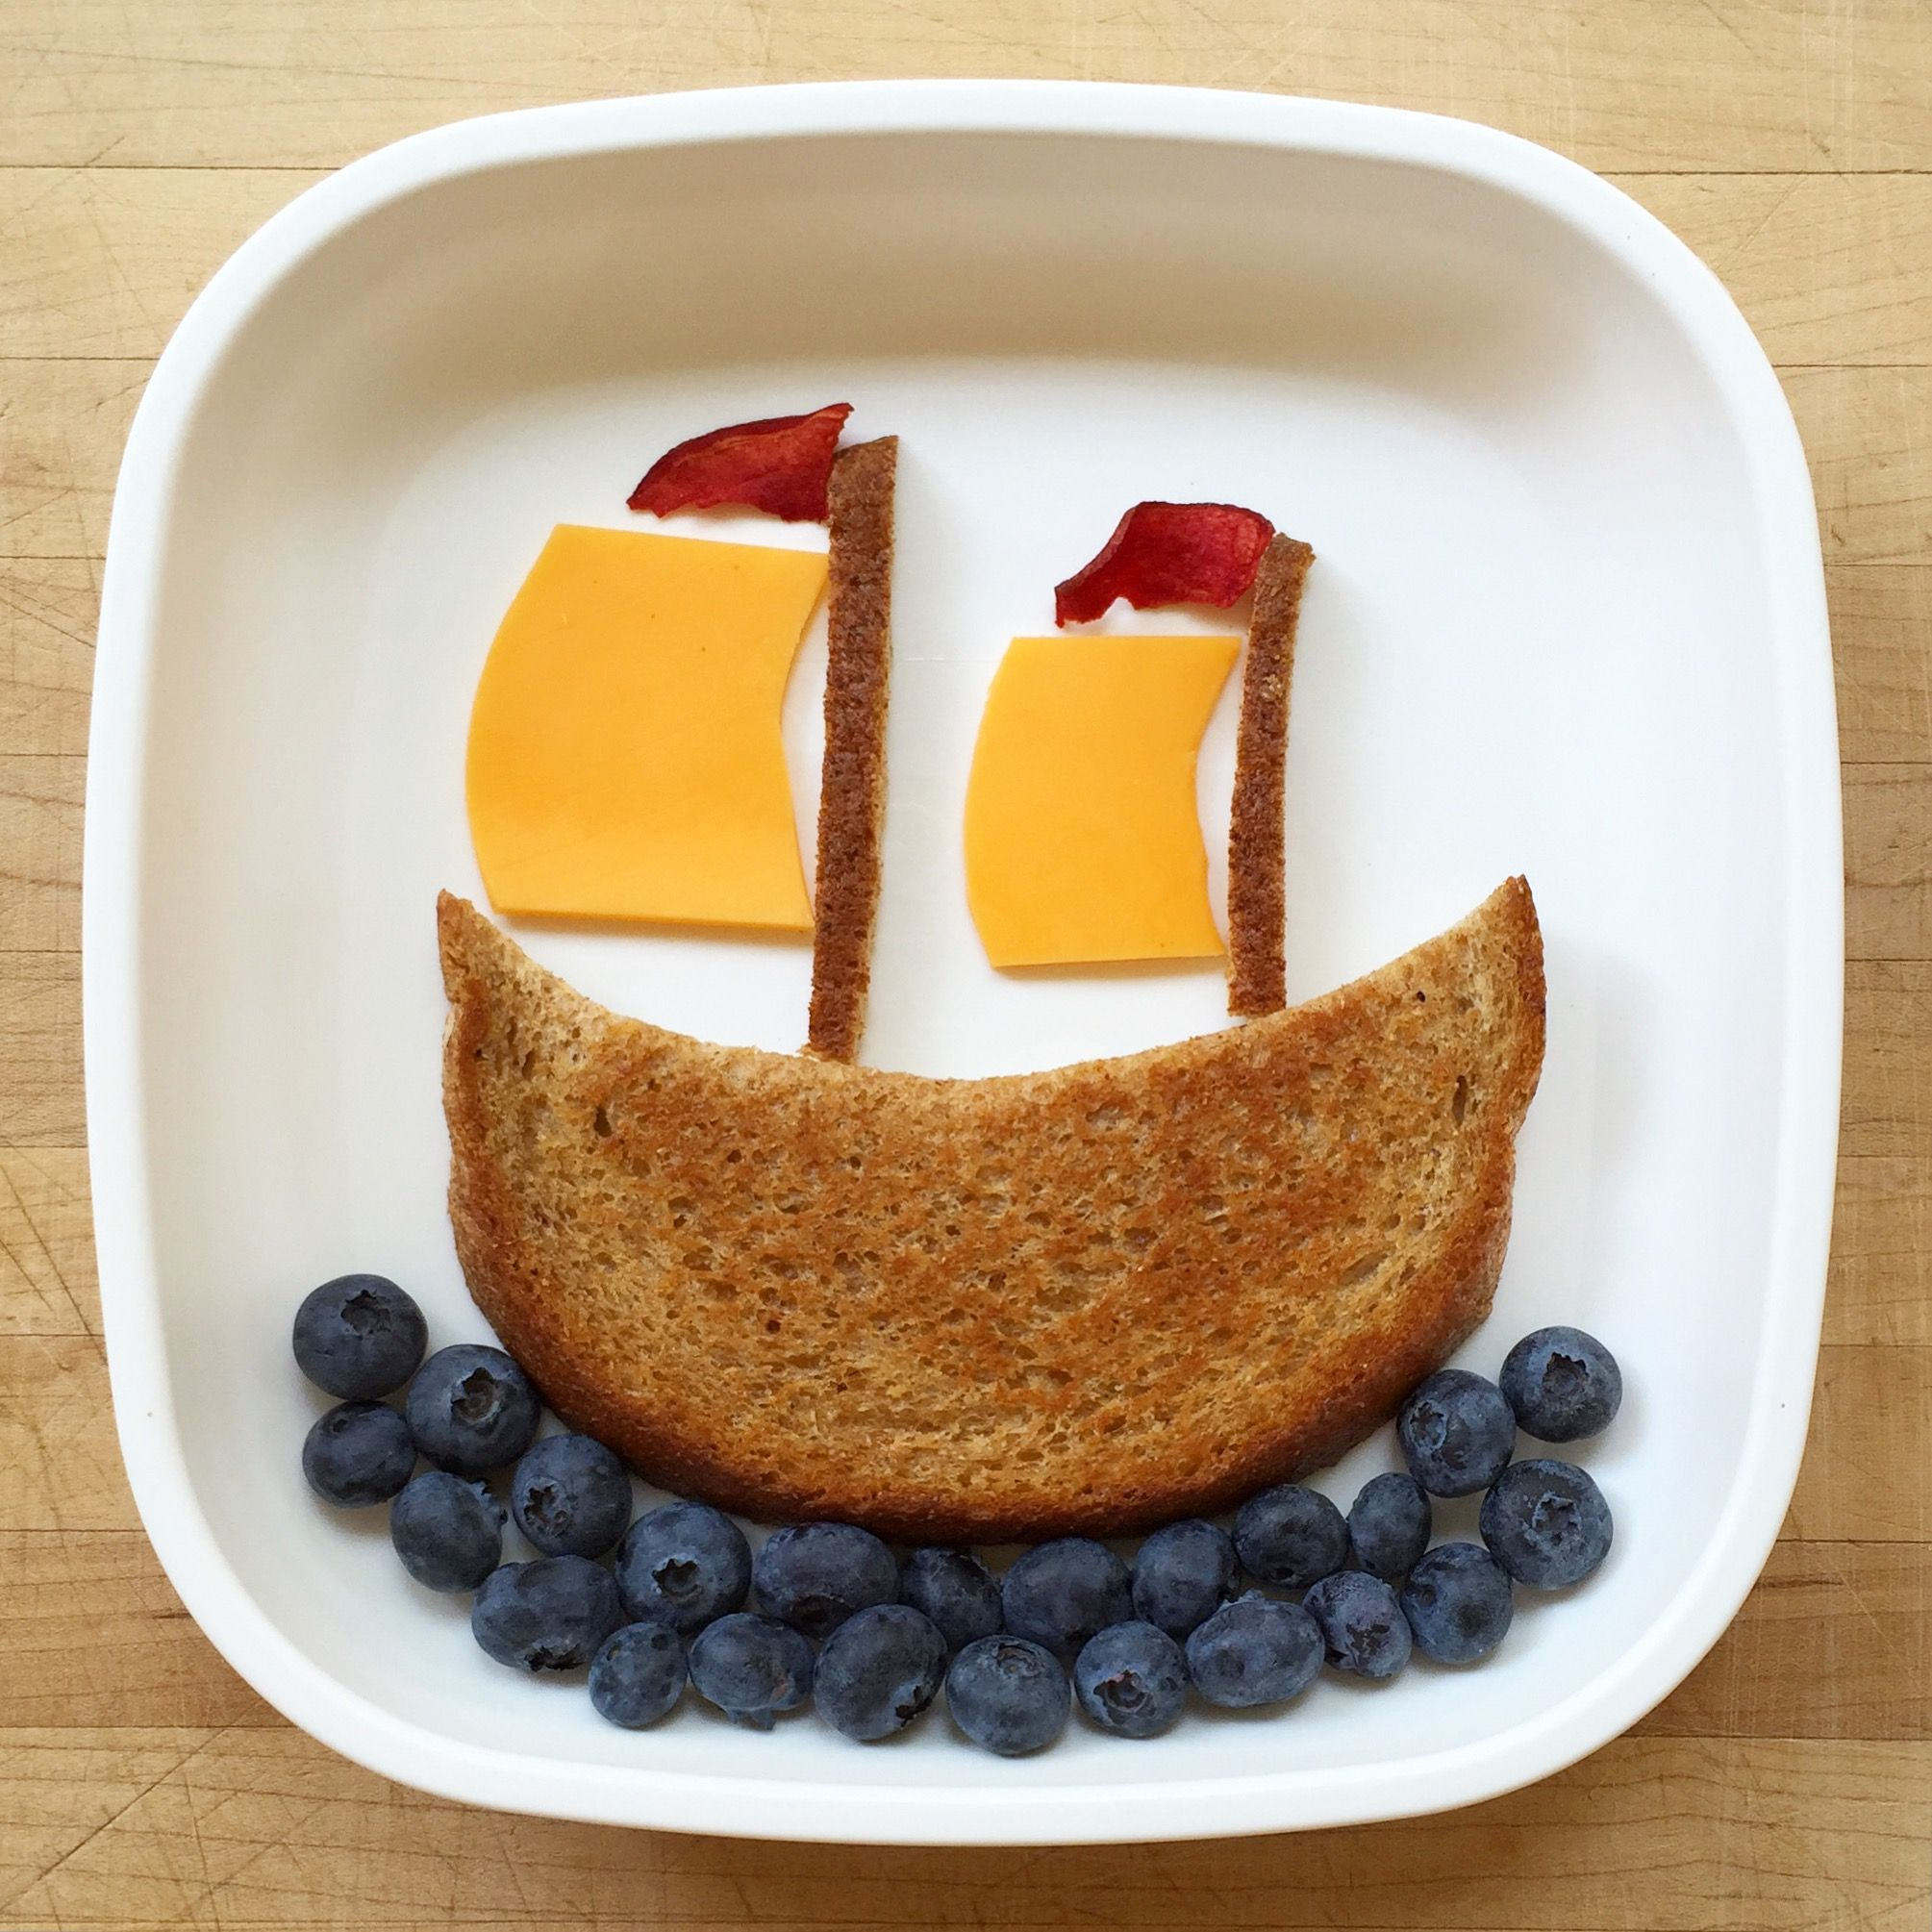 Supplies: Scissors Replay plate Ingredients: 1 slice bread, toasted ¼ cup blueberries 1 slice yellow cheese 2-3 beet chips TIP: You won't use them all, but